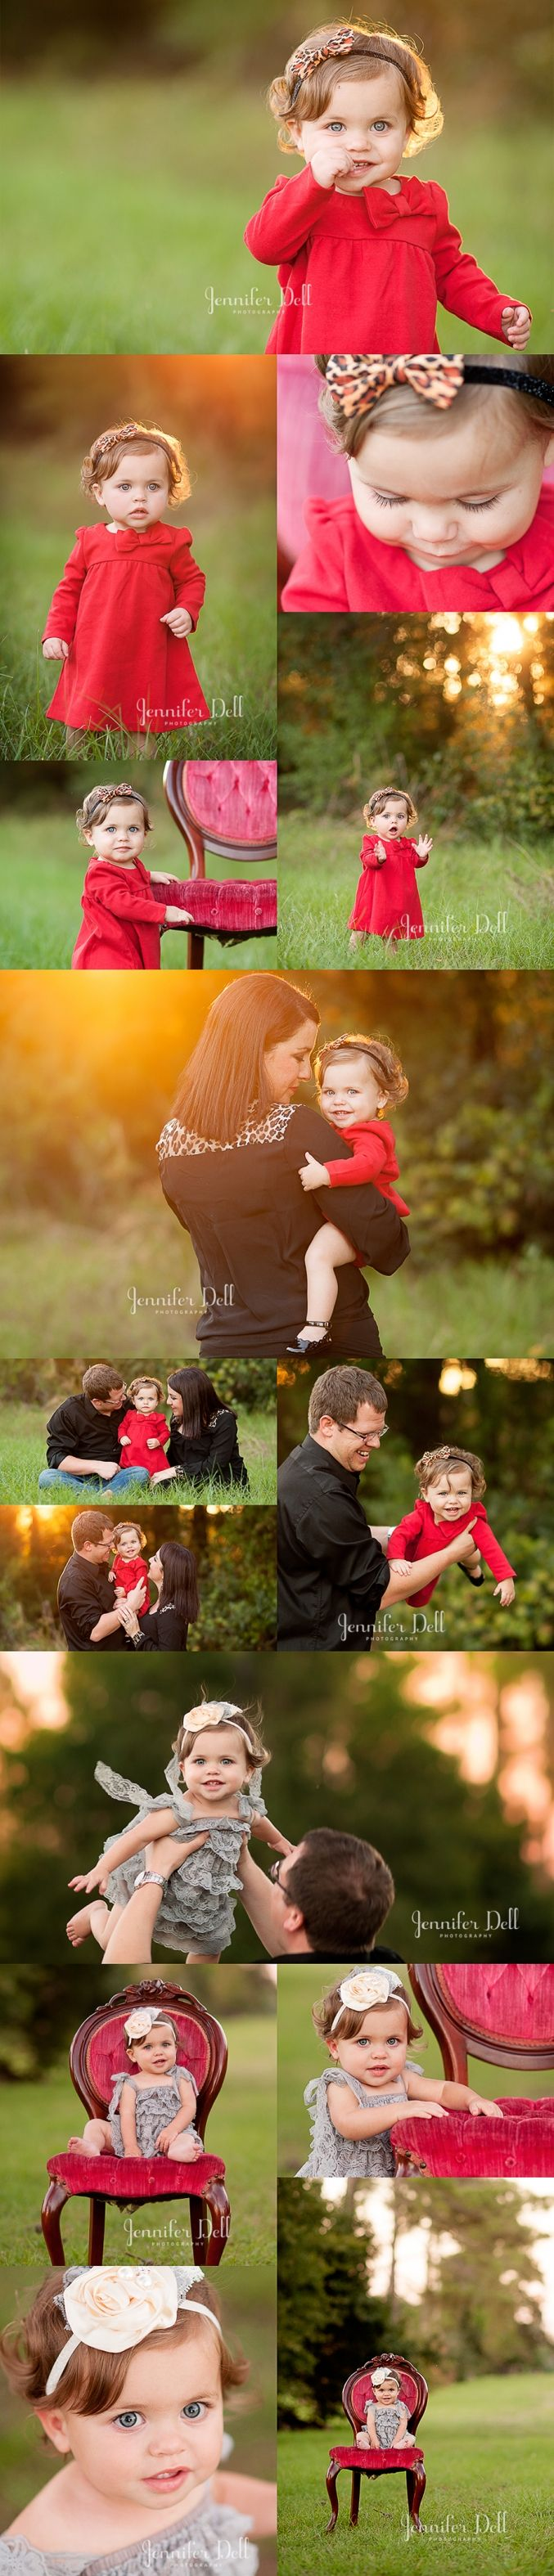 Houston & Tomball Photographer – Child, Baby & Family Photography – 832-377-5893 » award winning lifestyle and available light photography »...